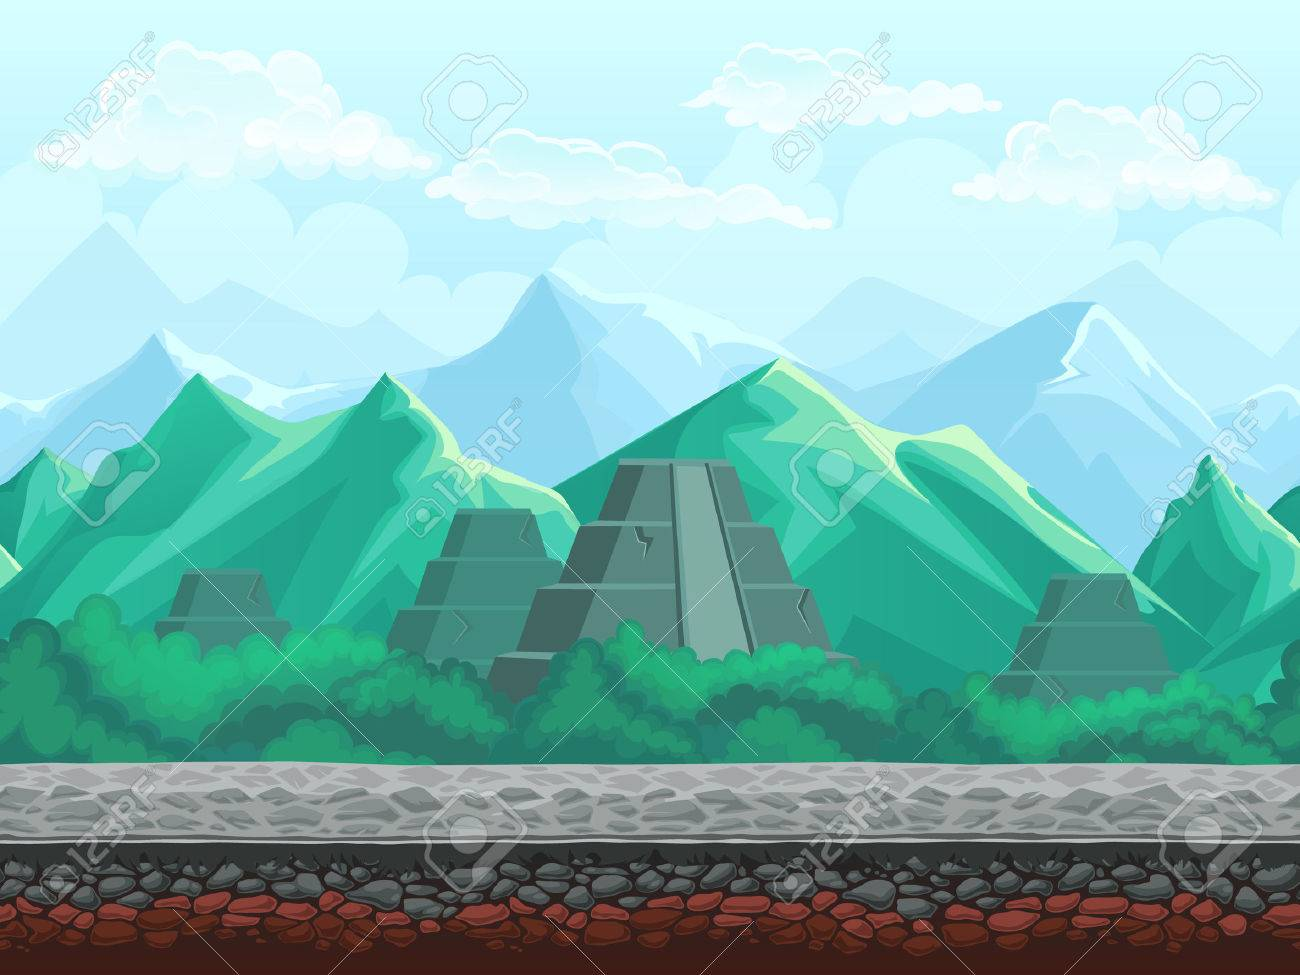 Illustration seamless background of the pyramid in the emerald illustration seamless background of the pyramid in the emerald mountains for mobile game user interface kristyandbryce Images